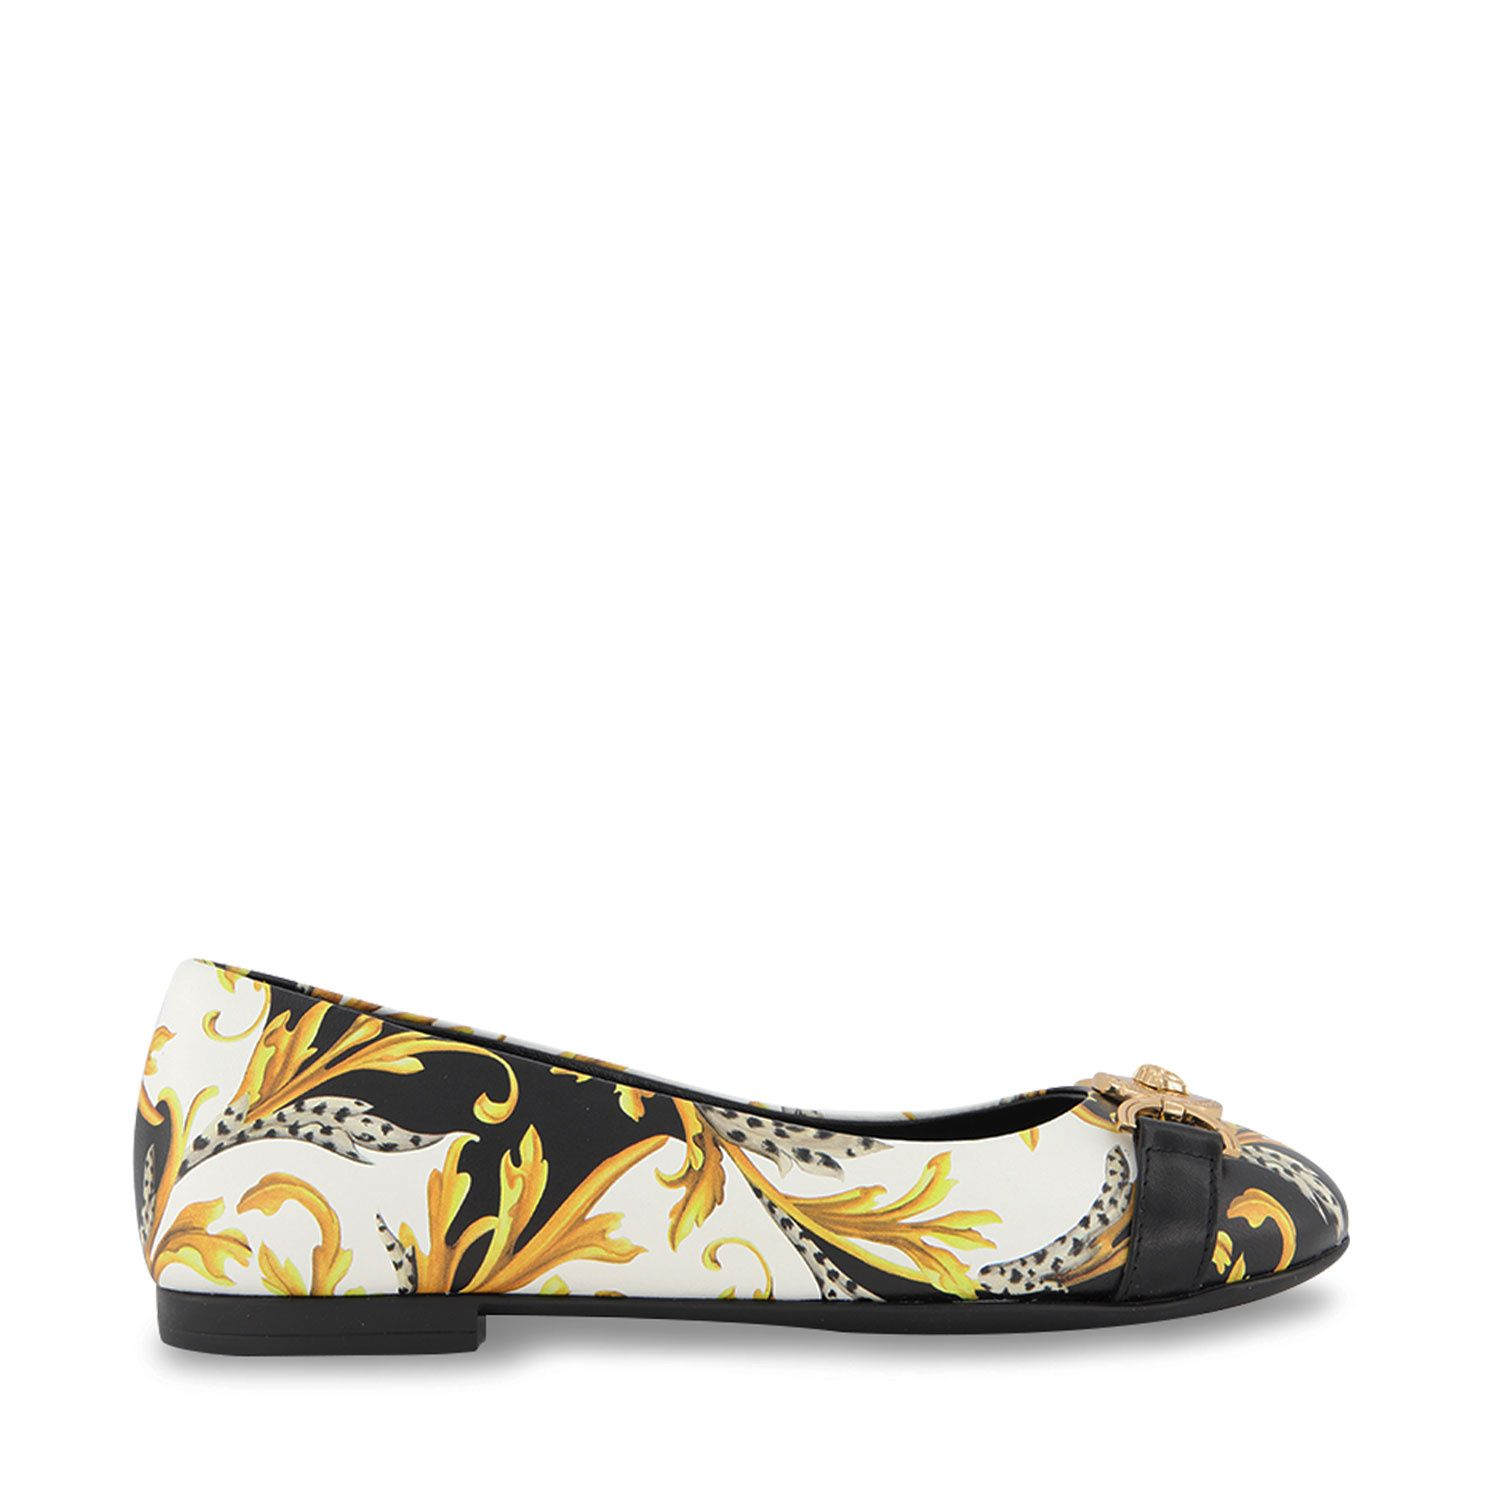 Picture of Versace YHF00052 kids shoes black